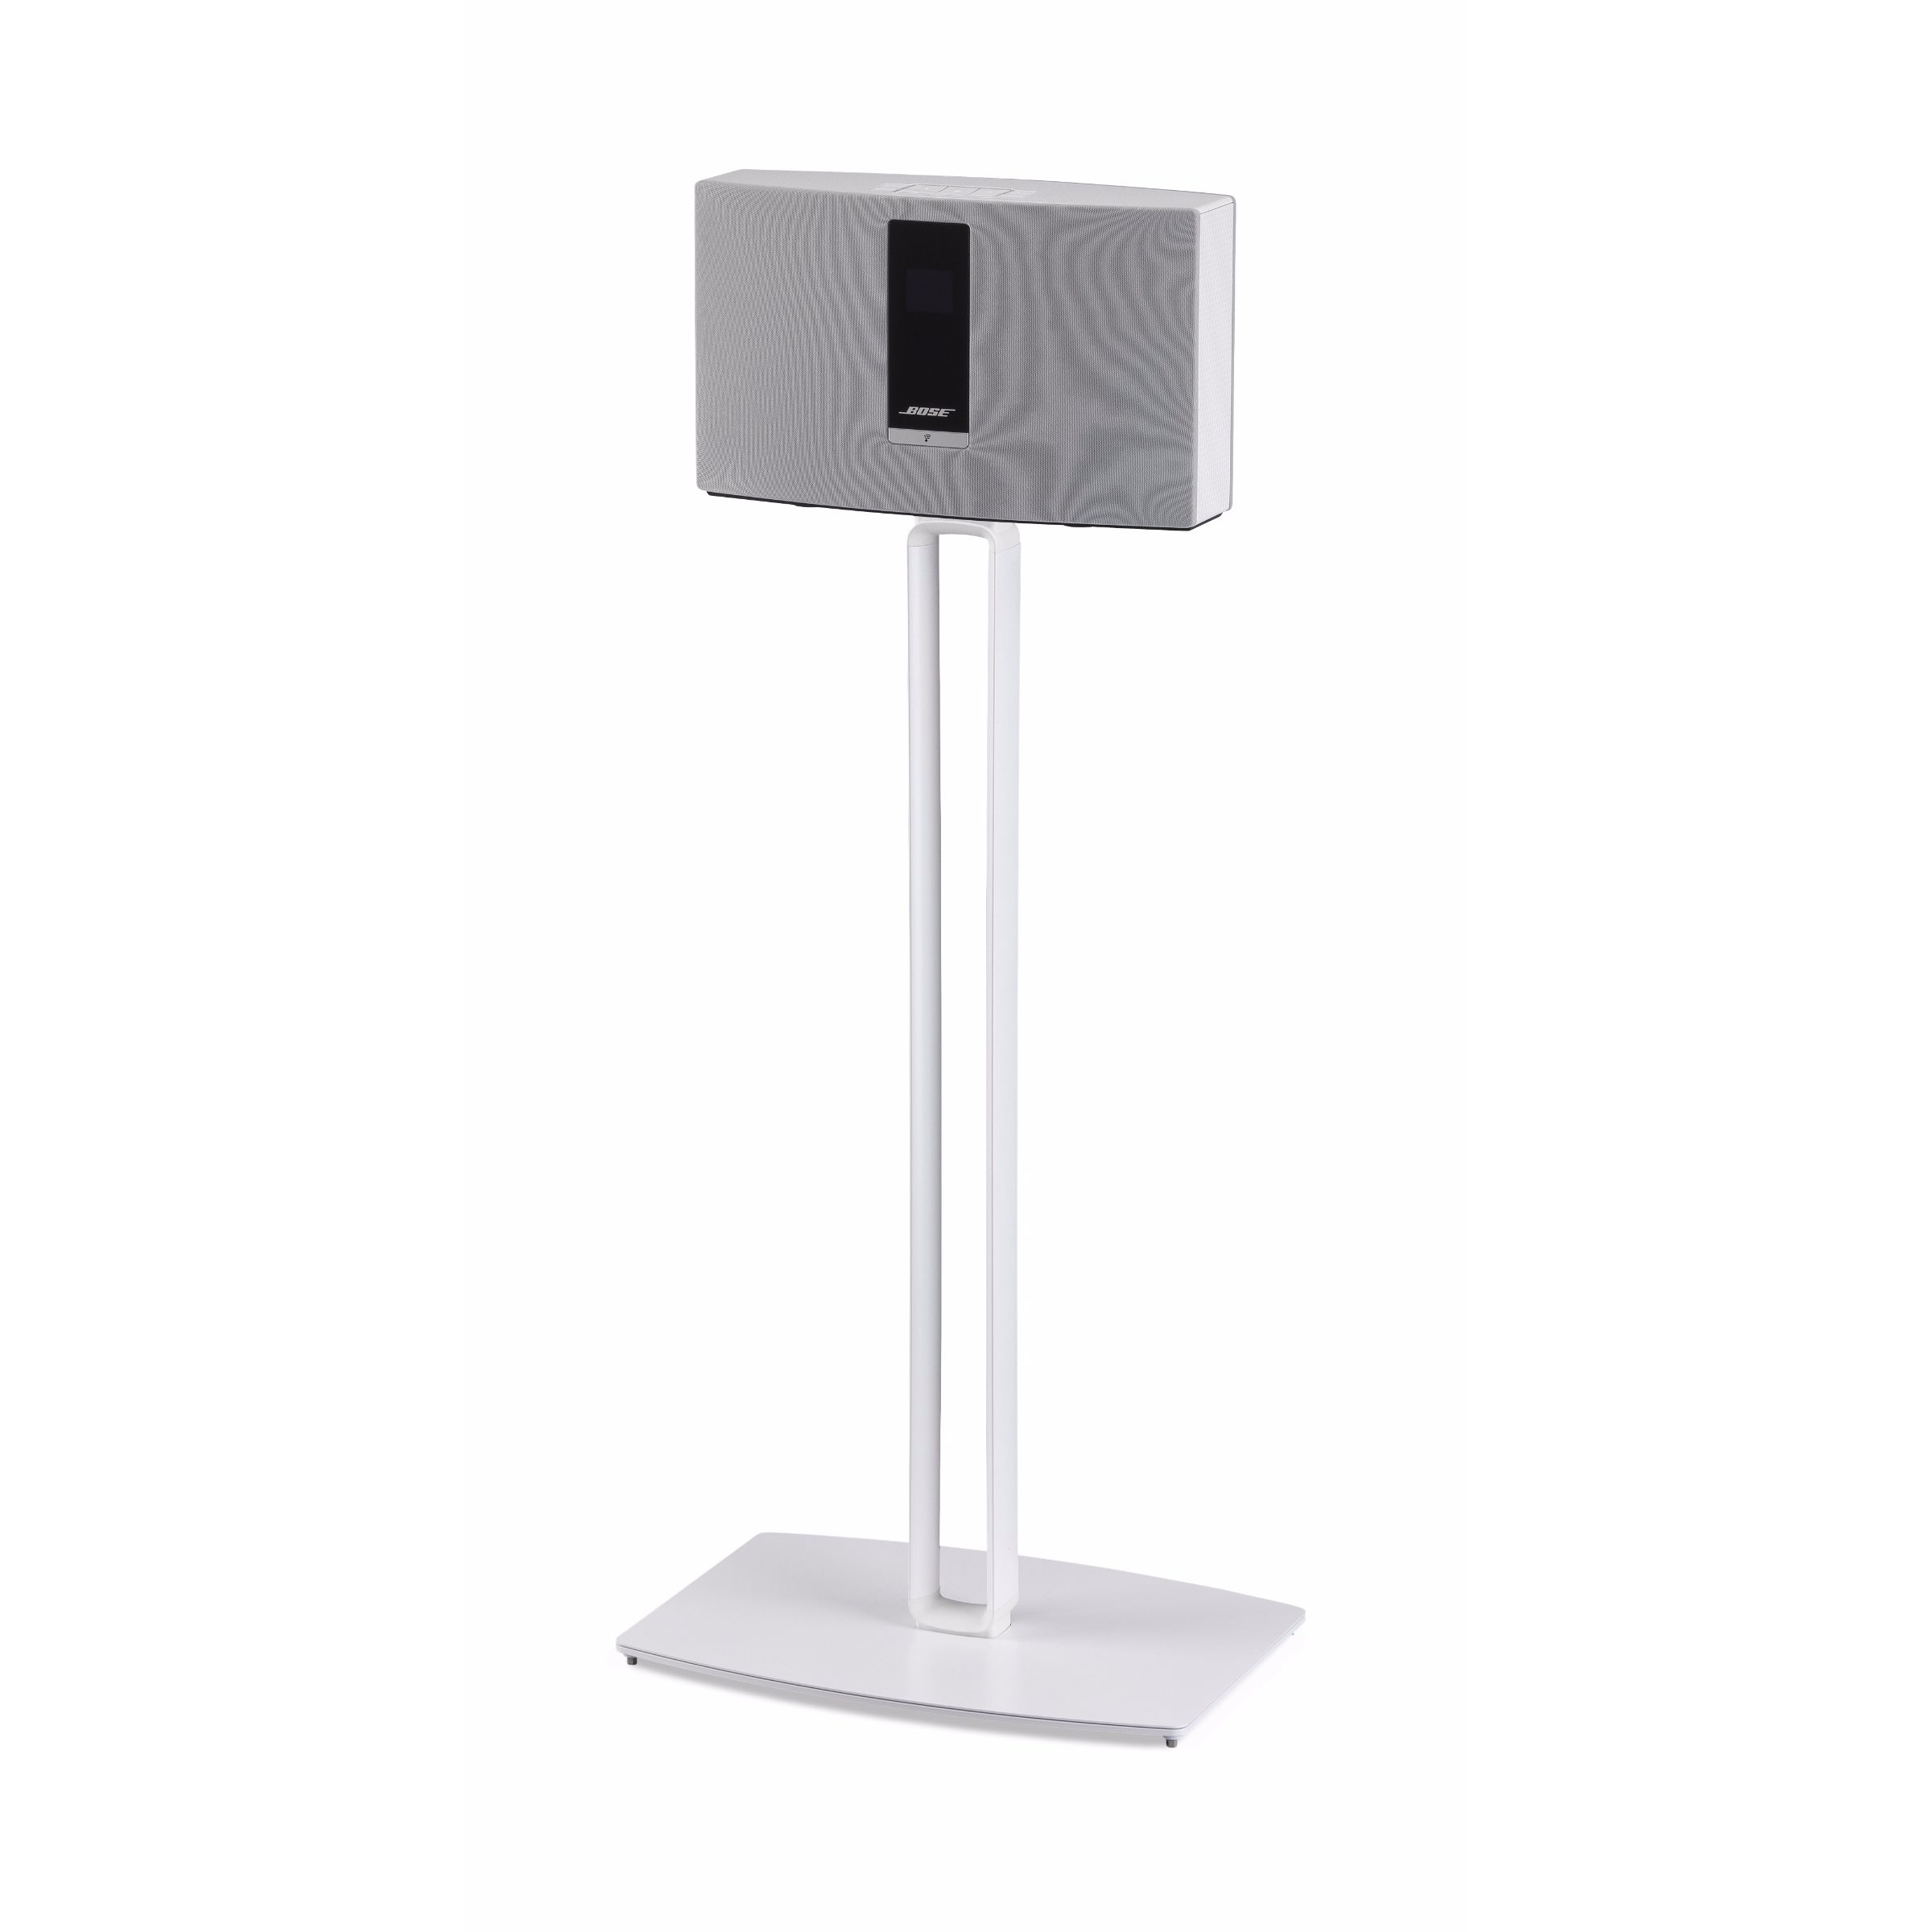 Bose SoundTouch 20 standaard wit 6